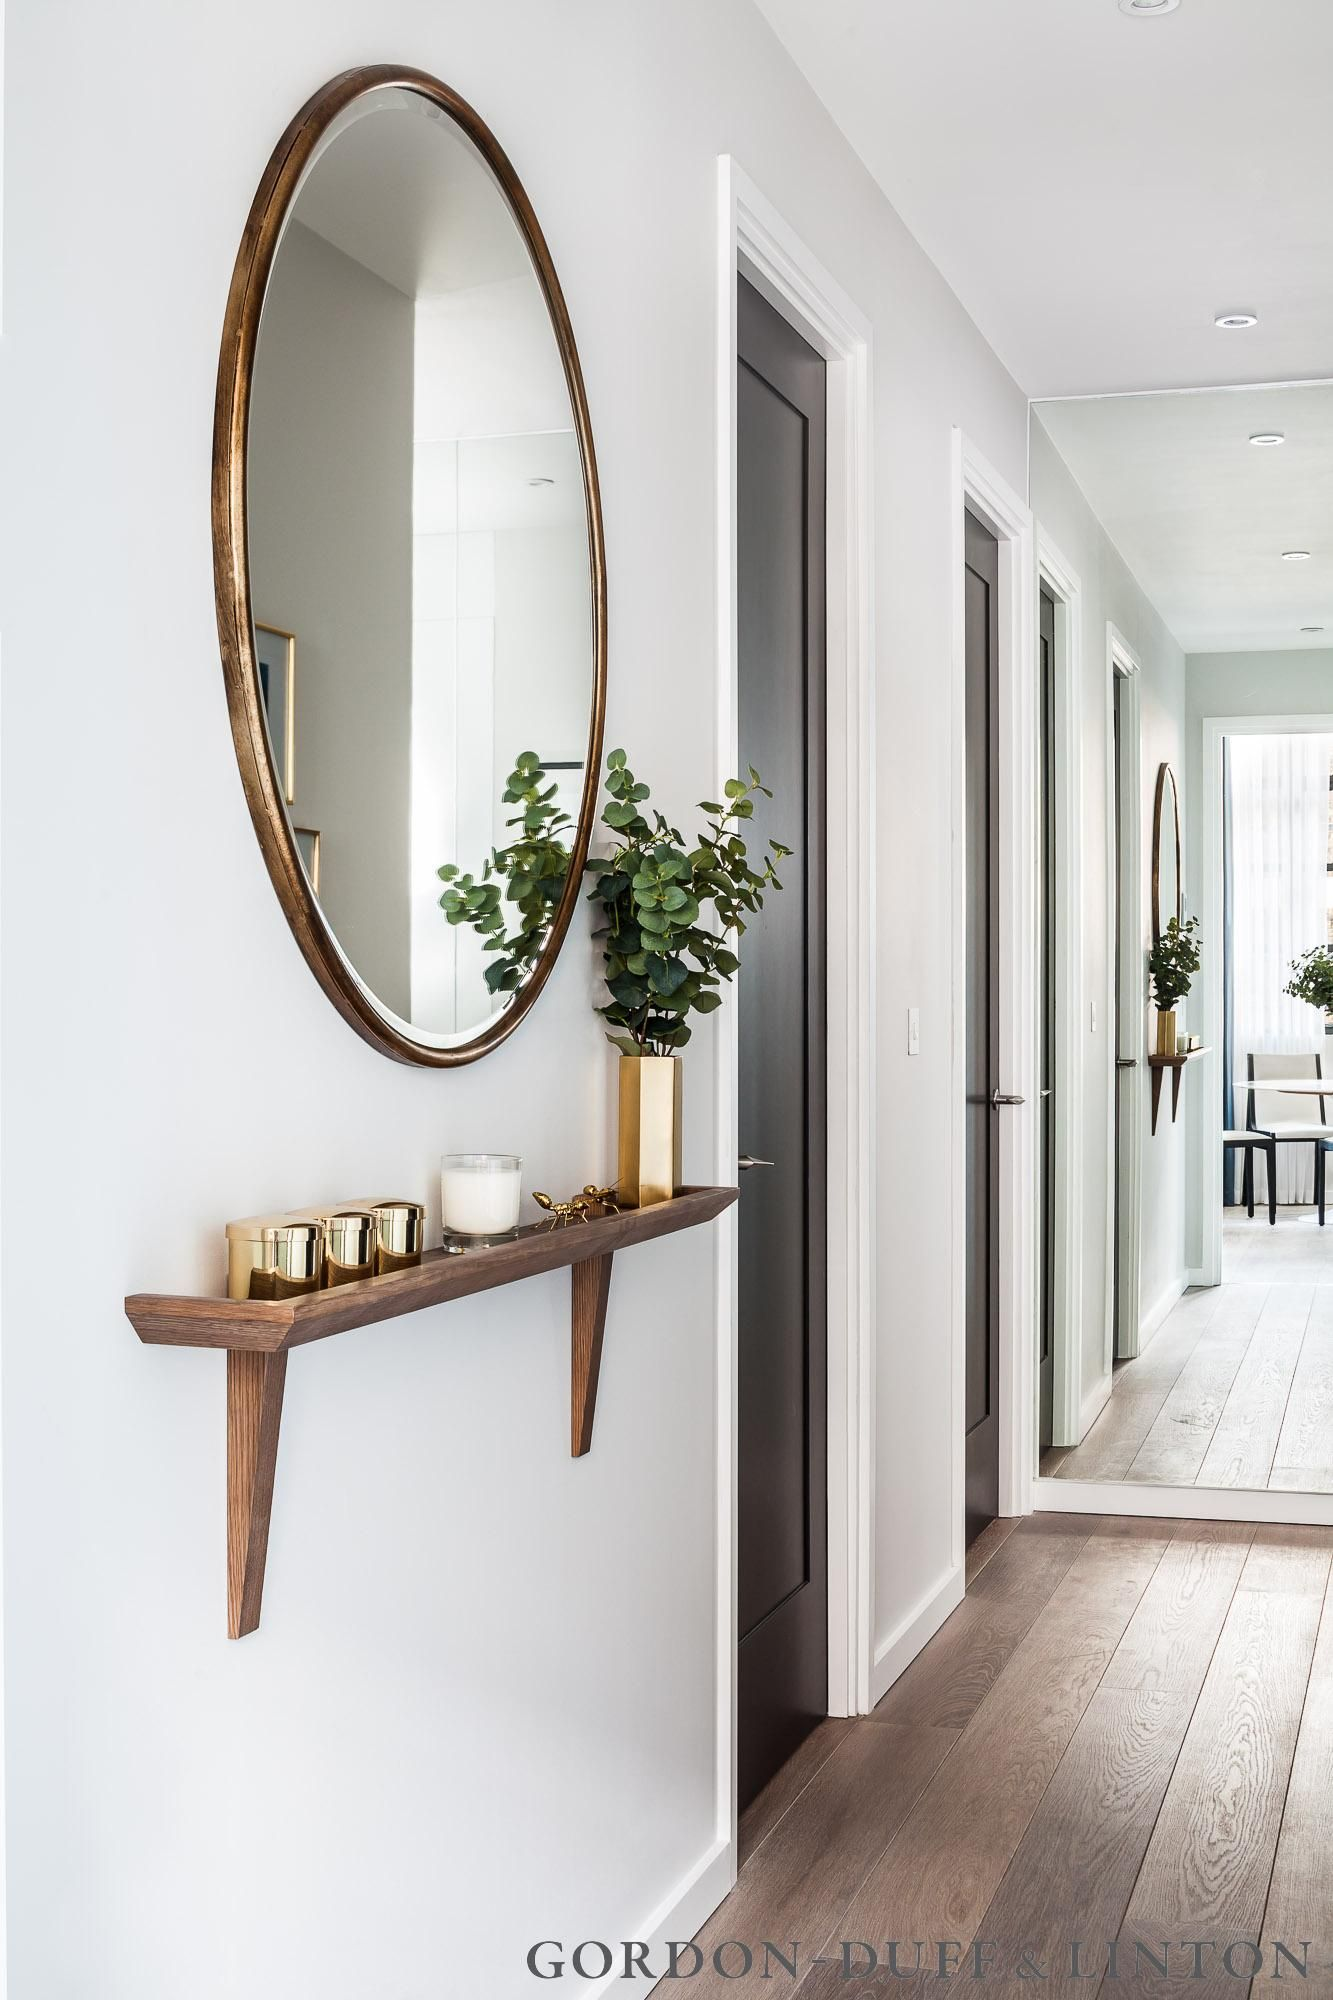 lovely brass mirror plus shallow ledge below warm and enliven this hallway hallway mirror hallway